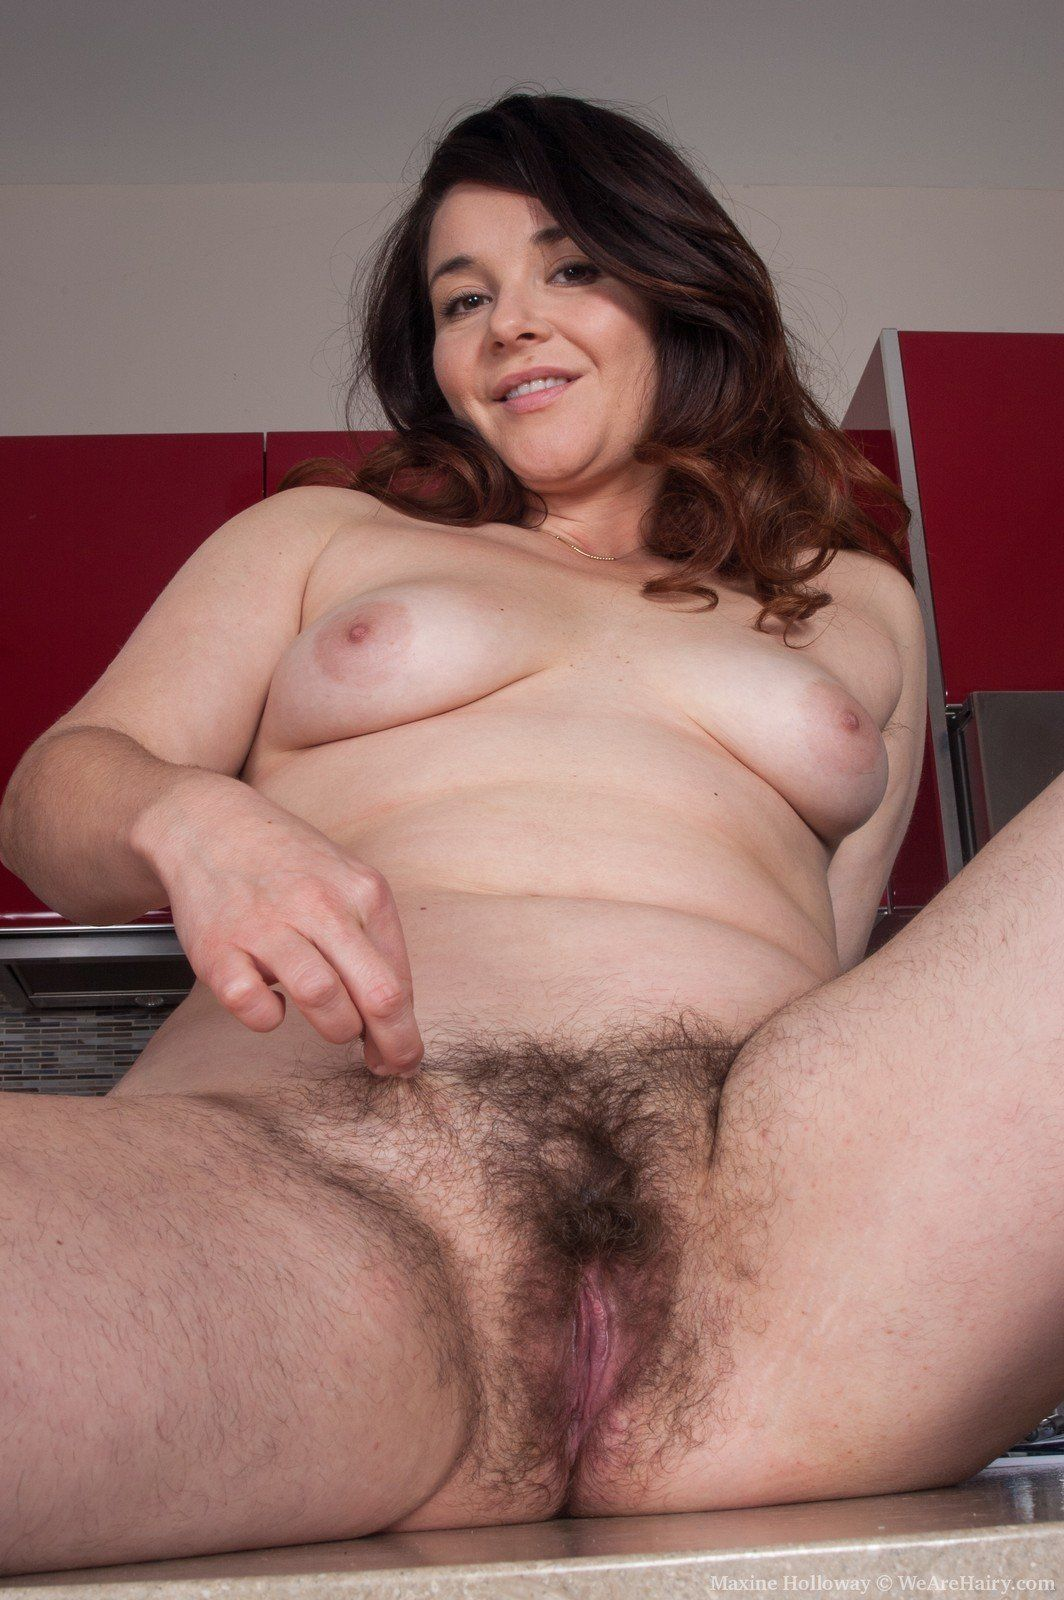 100 Pictures of Fat Hairy Girls Pics